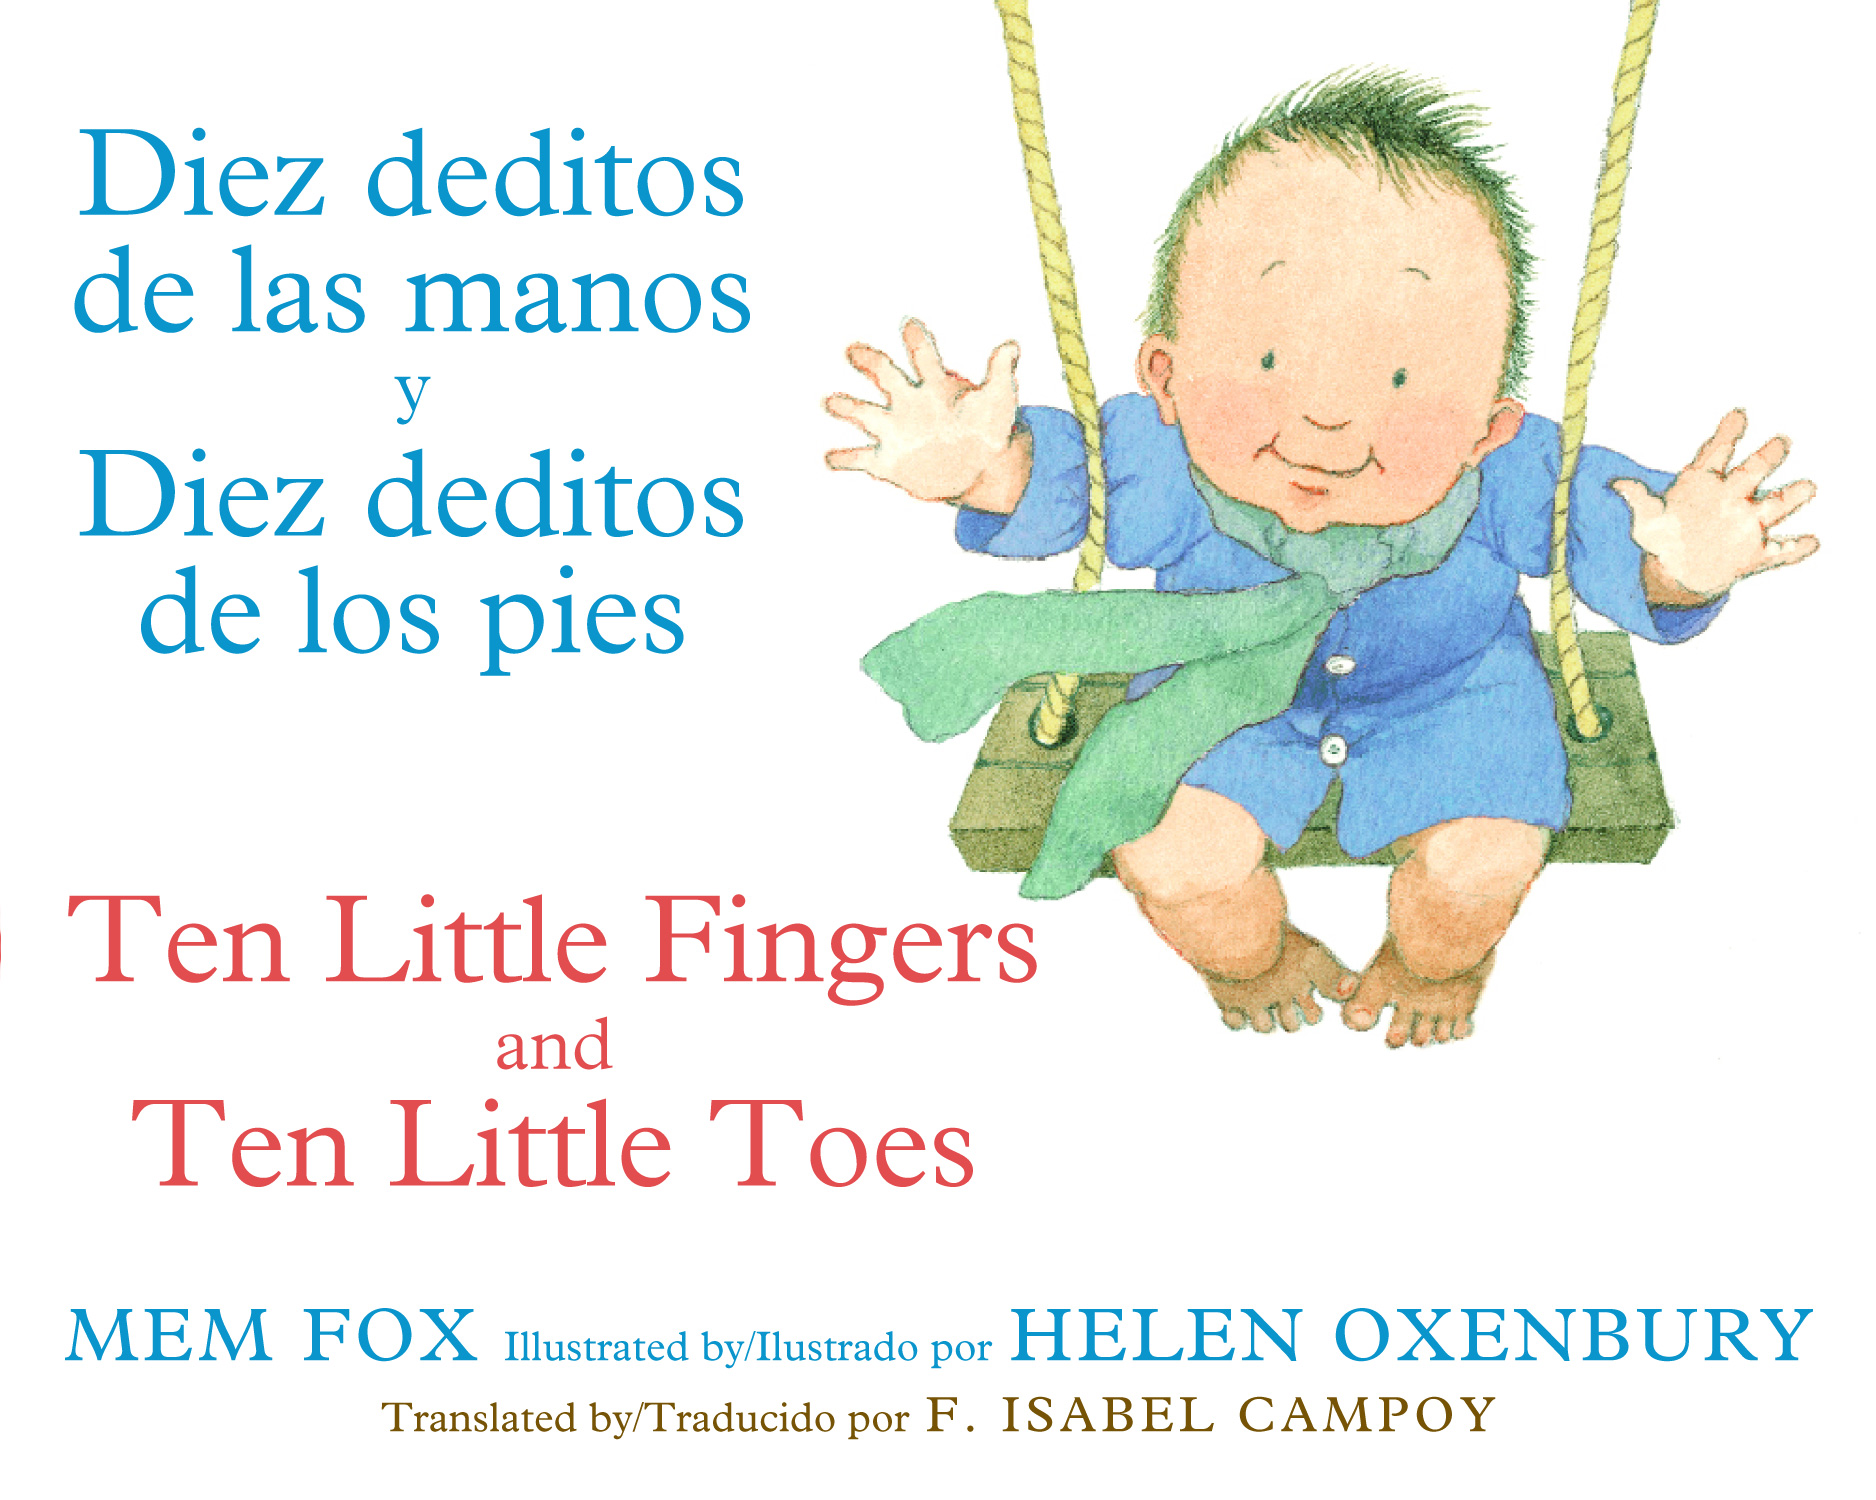 Diez deditos de las manos y Diez deditos de los pies / Ten Little Fingers and Ten Little Toes bilingual board book-9780547870069